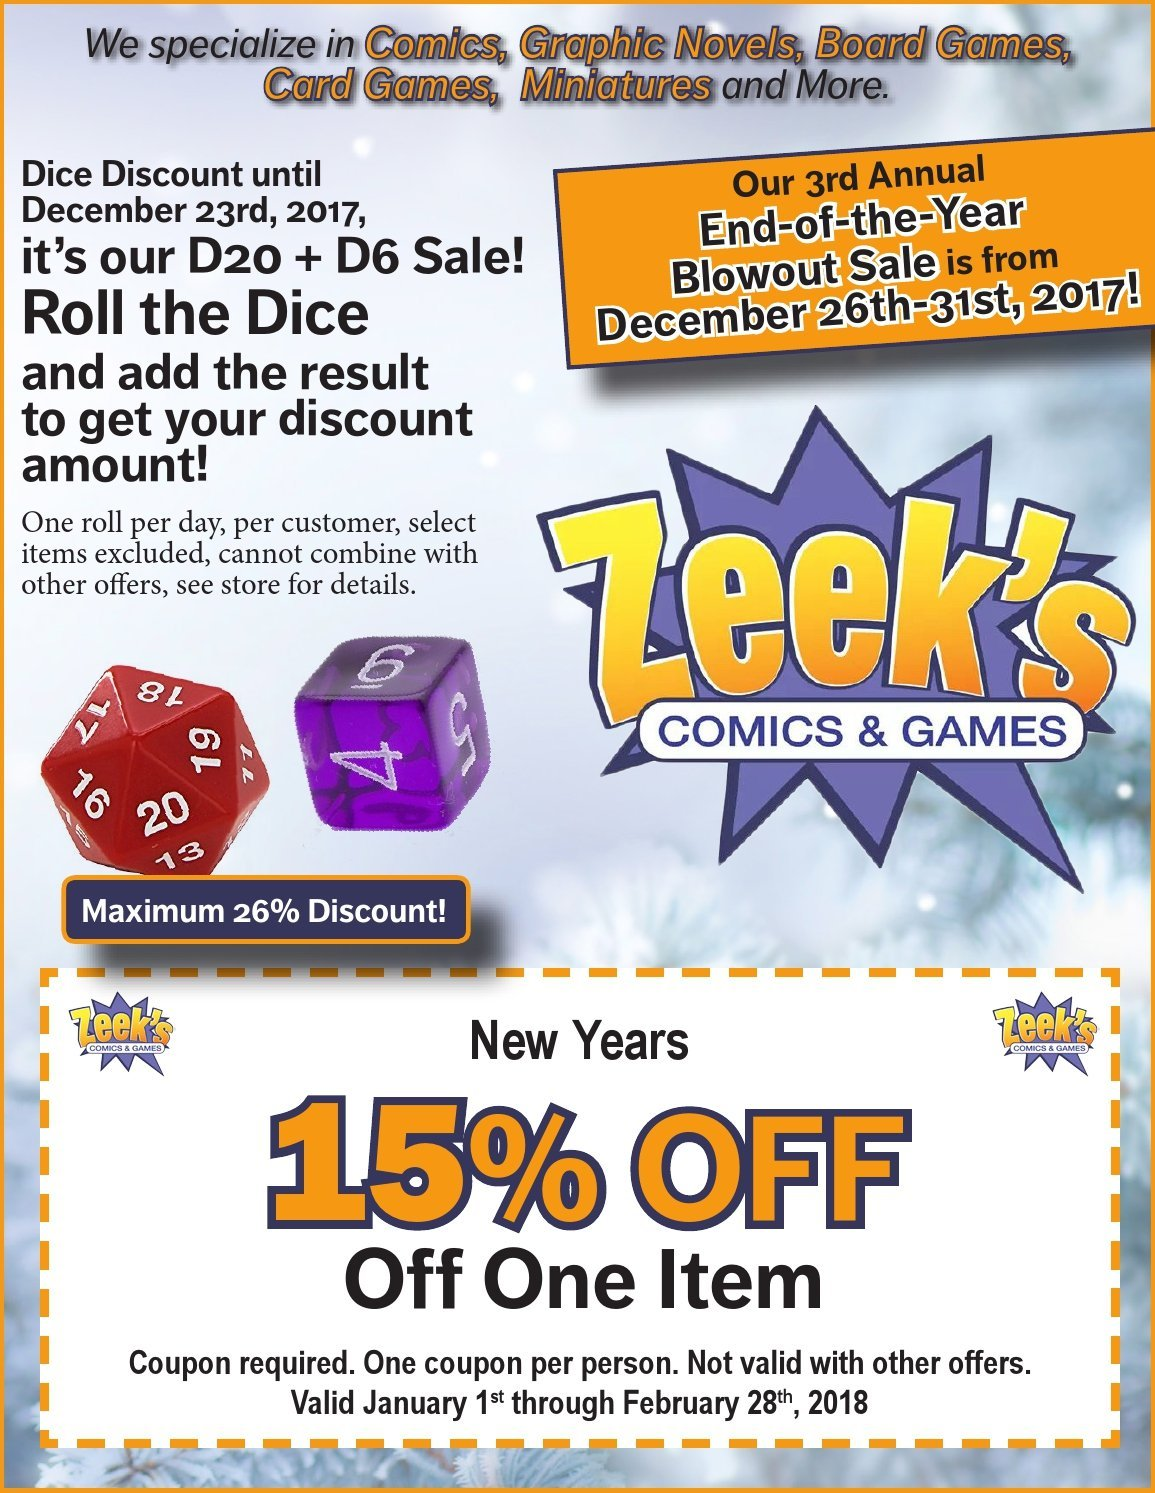 Zeeks Comics and Games D20 + D6 sale, end-of-the-year blowout, 15% off coupon Sunnyland Washington, IL